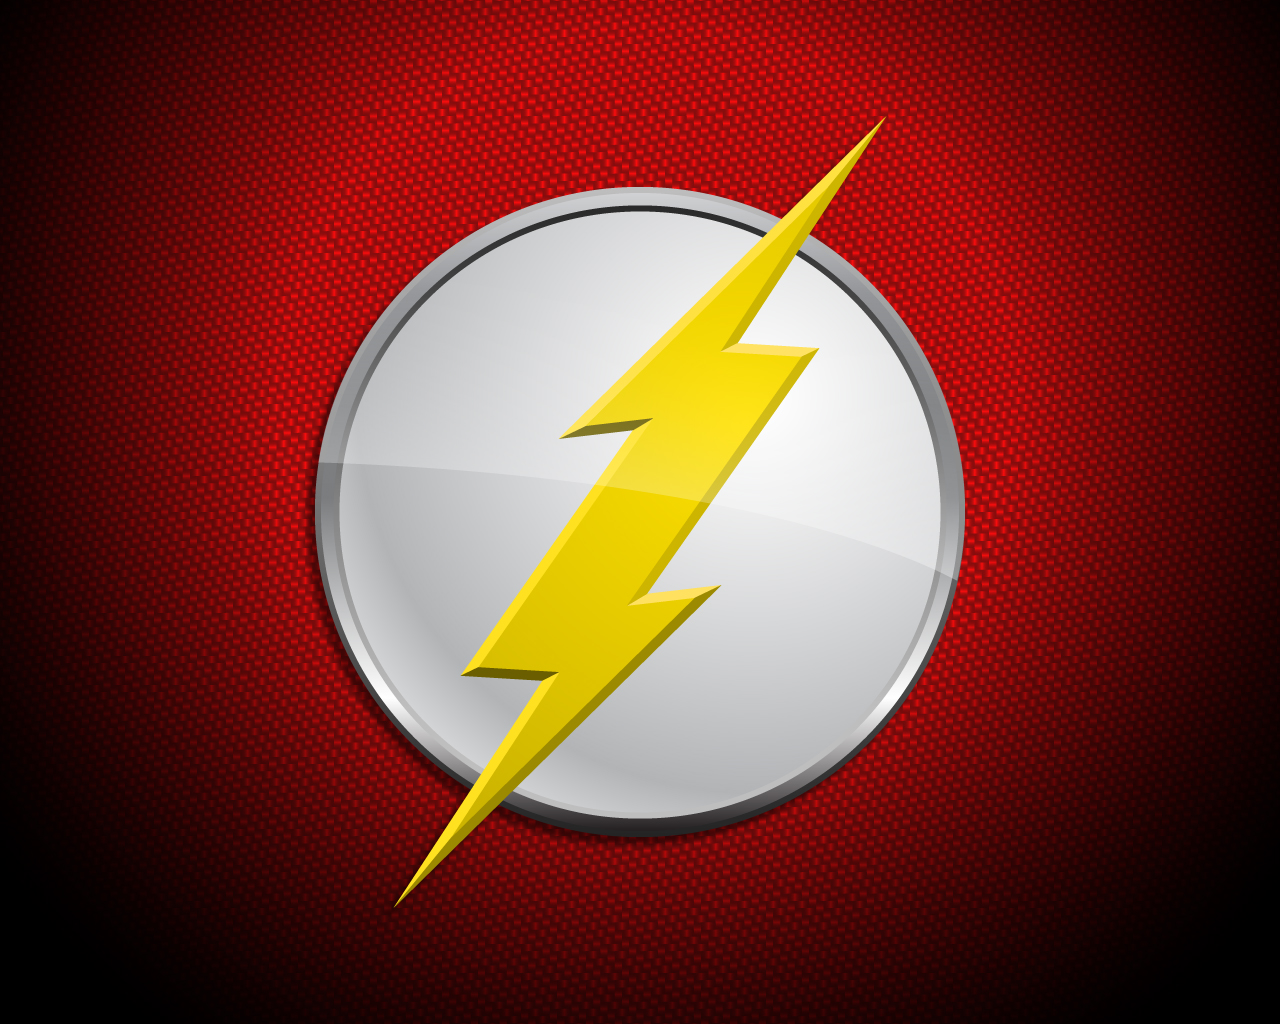 The Flash Logo Wallpaper Images Pictures   Becuo 1280x1024